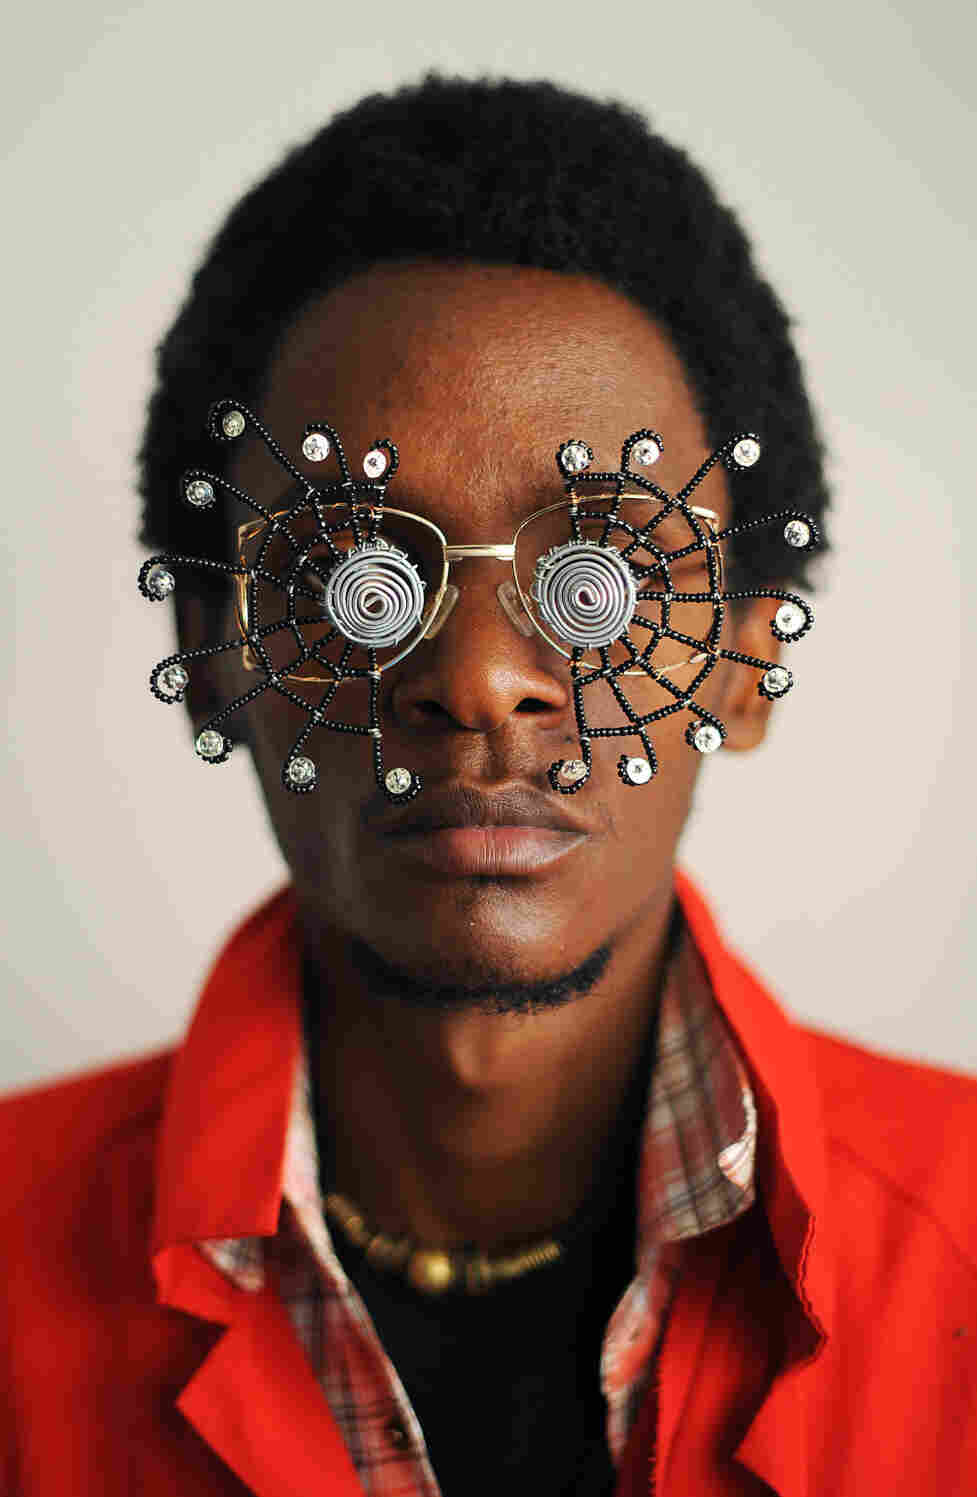 """Kenyan artist Cyrus Kabiru poses with an artwork resembling sunglasses on February 1, 2012 in Nairobi. Kabiru has created a range of artworks called """"c-stunners"""" that resemble sunglasses but have been made with objects found on the street on his way to his studio."""